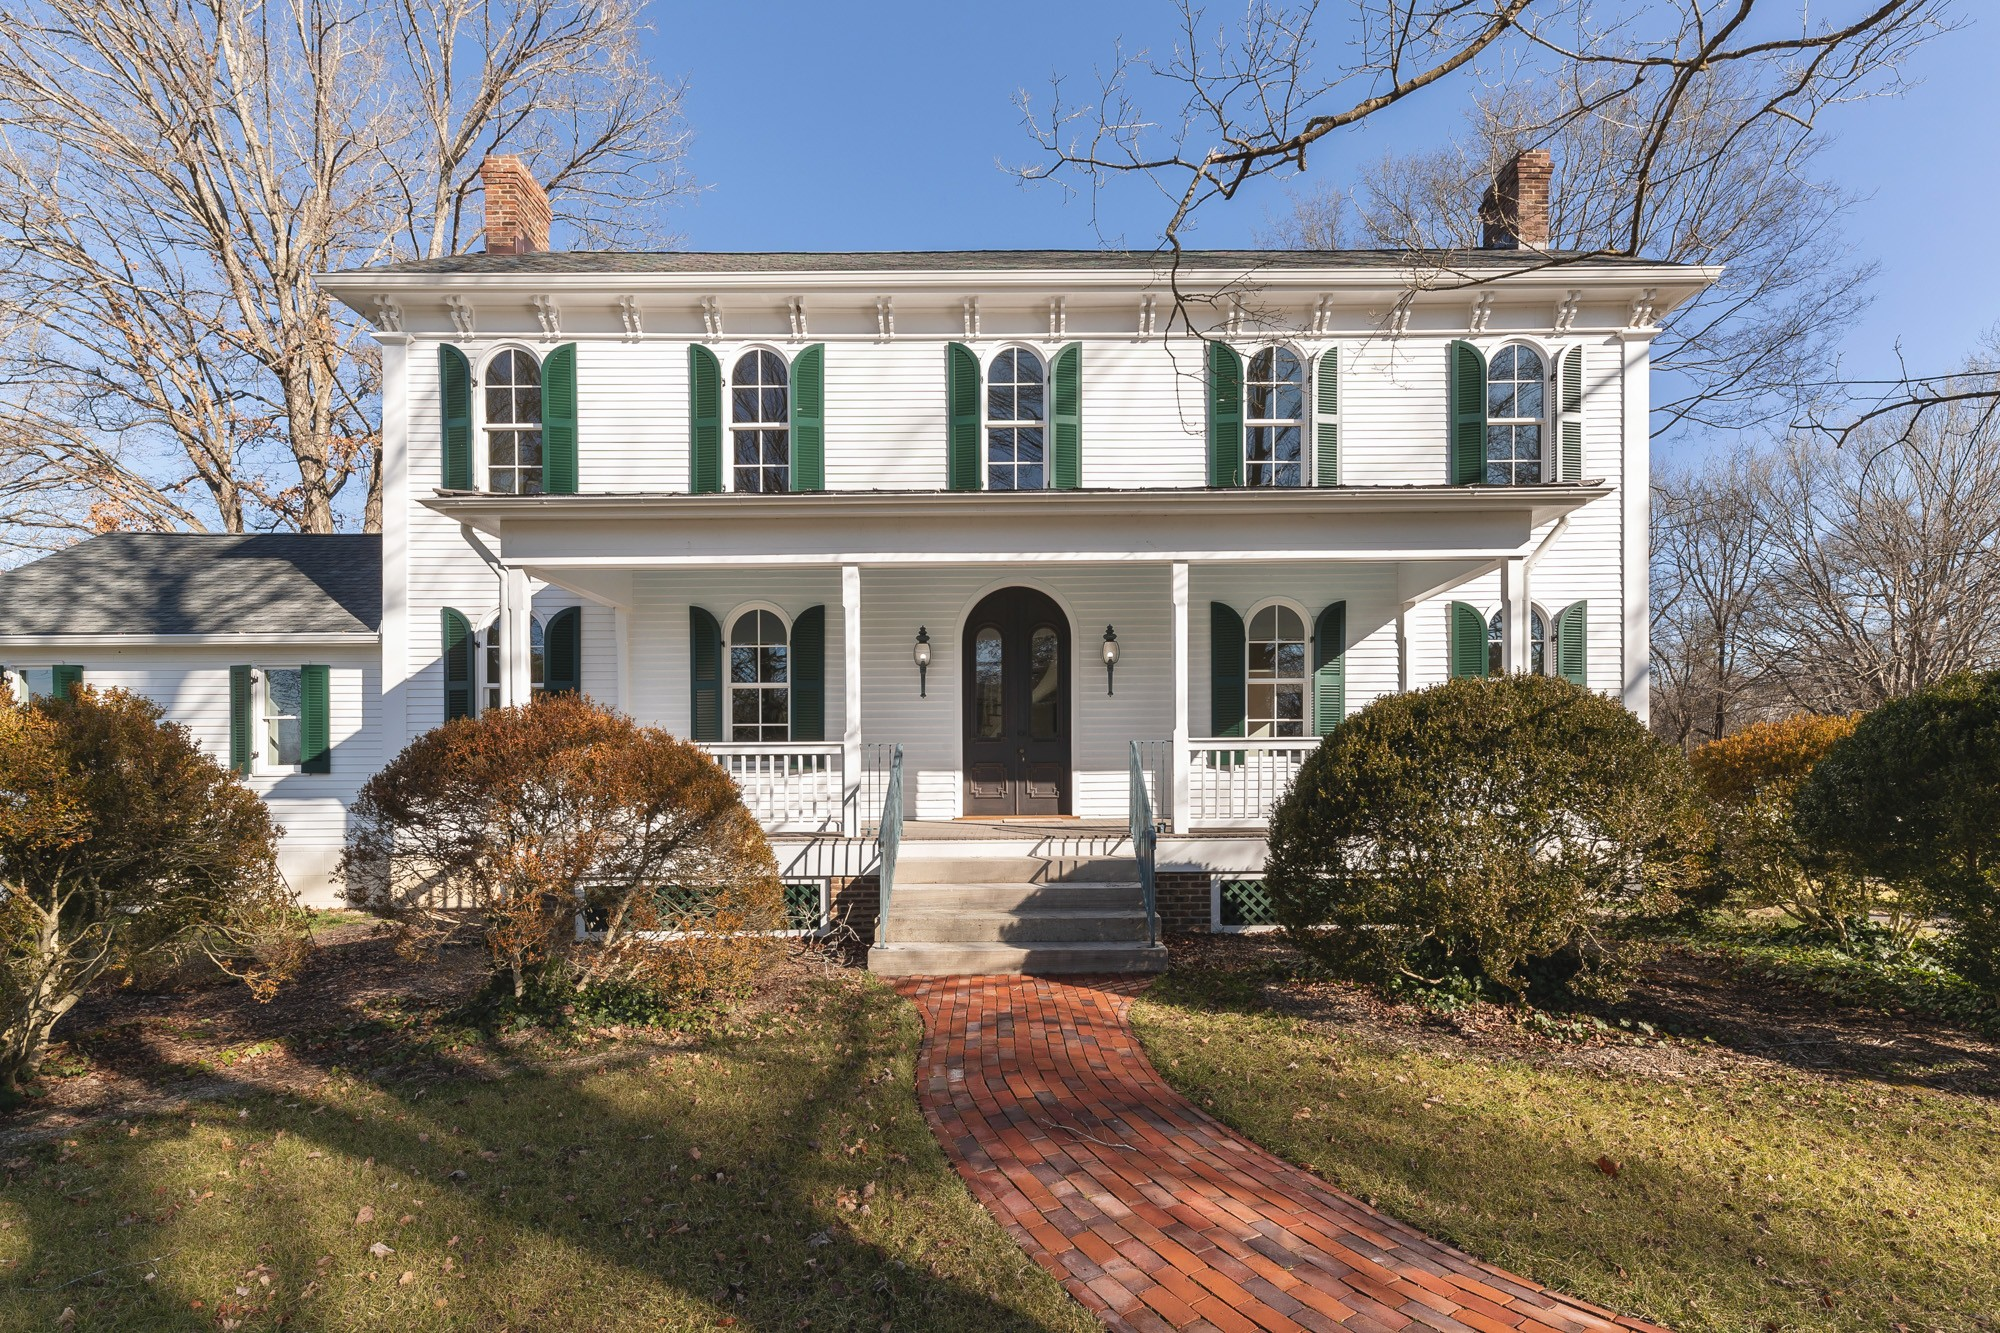 Originally built in 1866, this historic Franklin home has been completely rebuilt in a manor true to historic preservation and luxury new construction. This home was redesigned in rotunda style inspired by Italian architect Andre Palladio, giving this home balance and symmetry. The center point of the house is topped with a cupola commonly found in Italianette architecture promoted by 19th-century architect Andrew Jackson Davis. Safely walk to downtown or enjoy a morning run at the park.